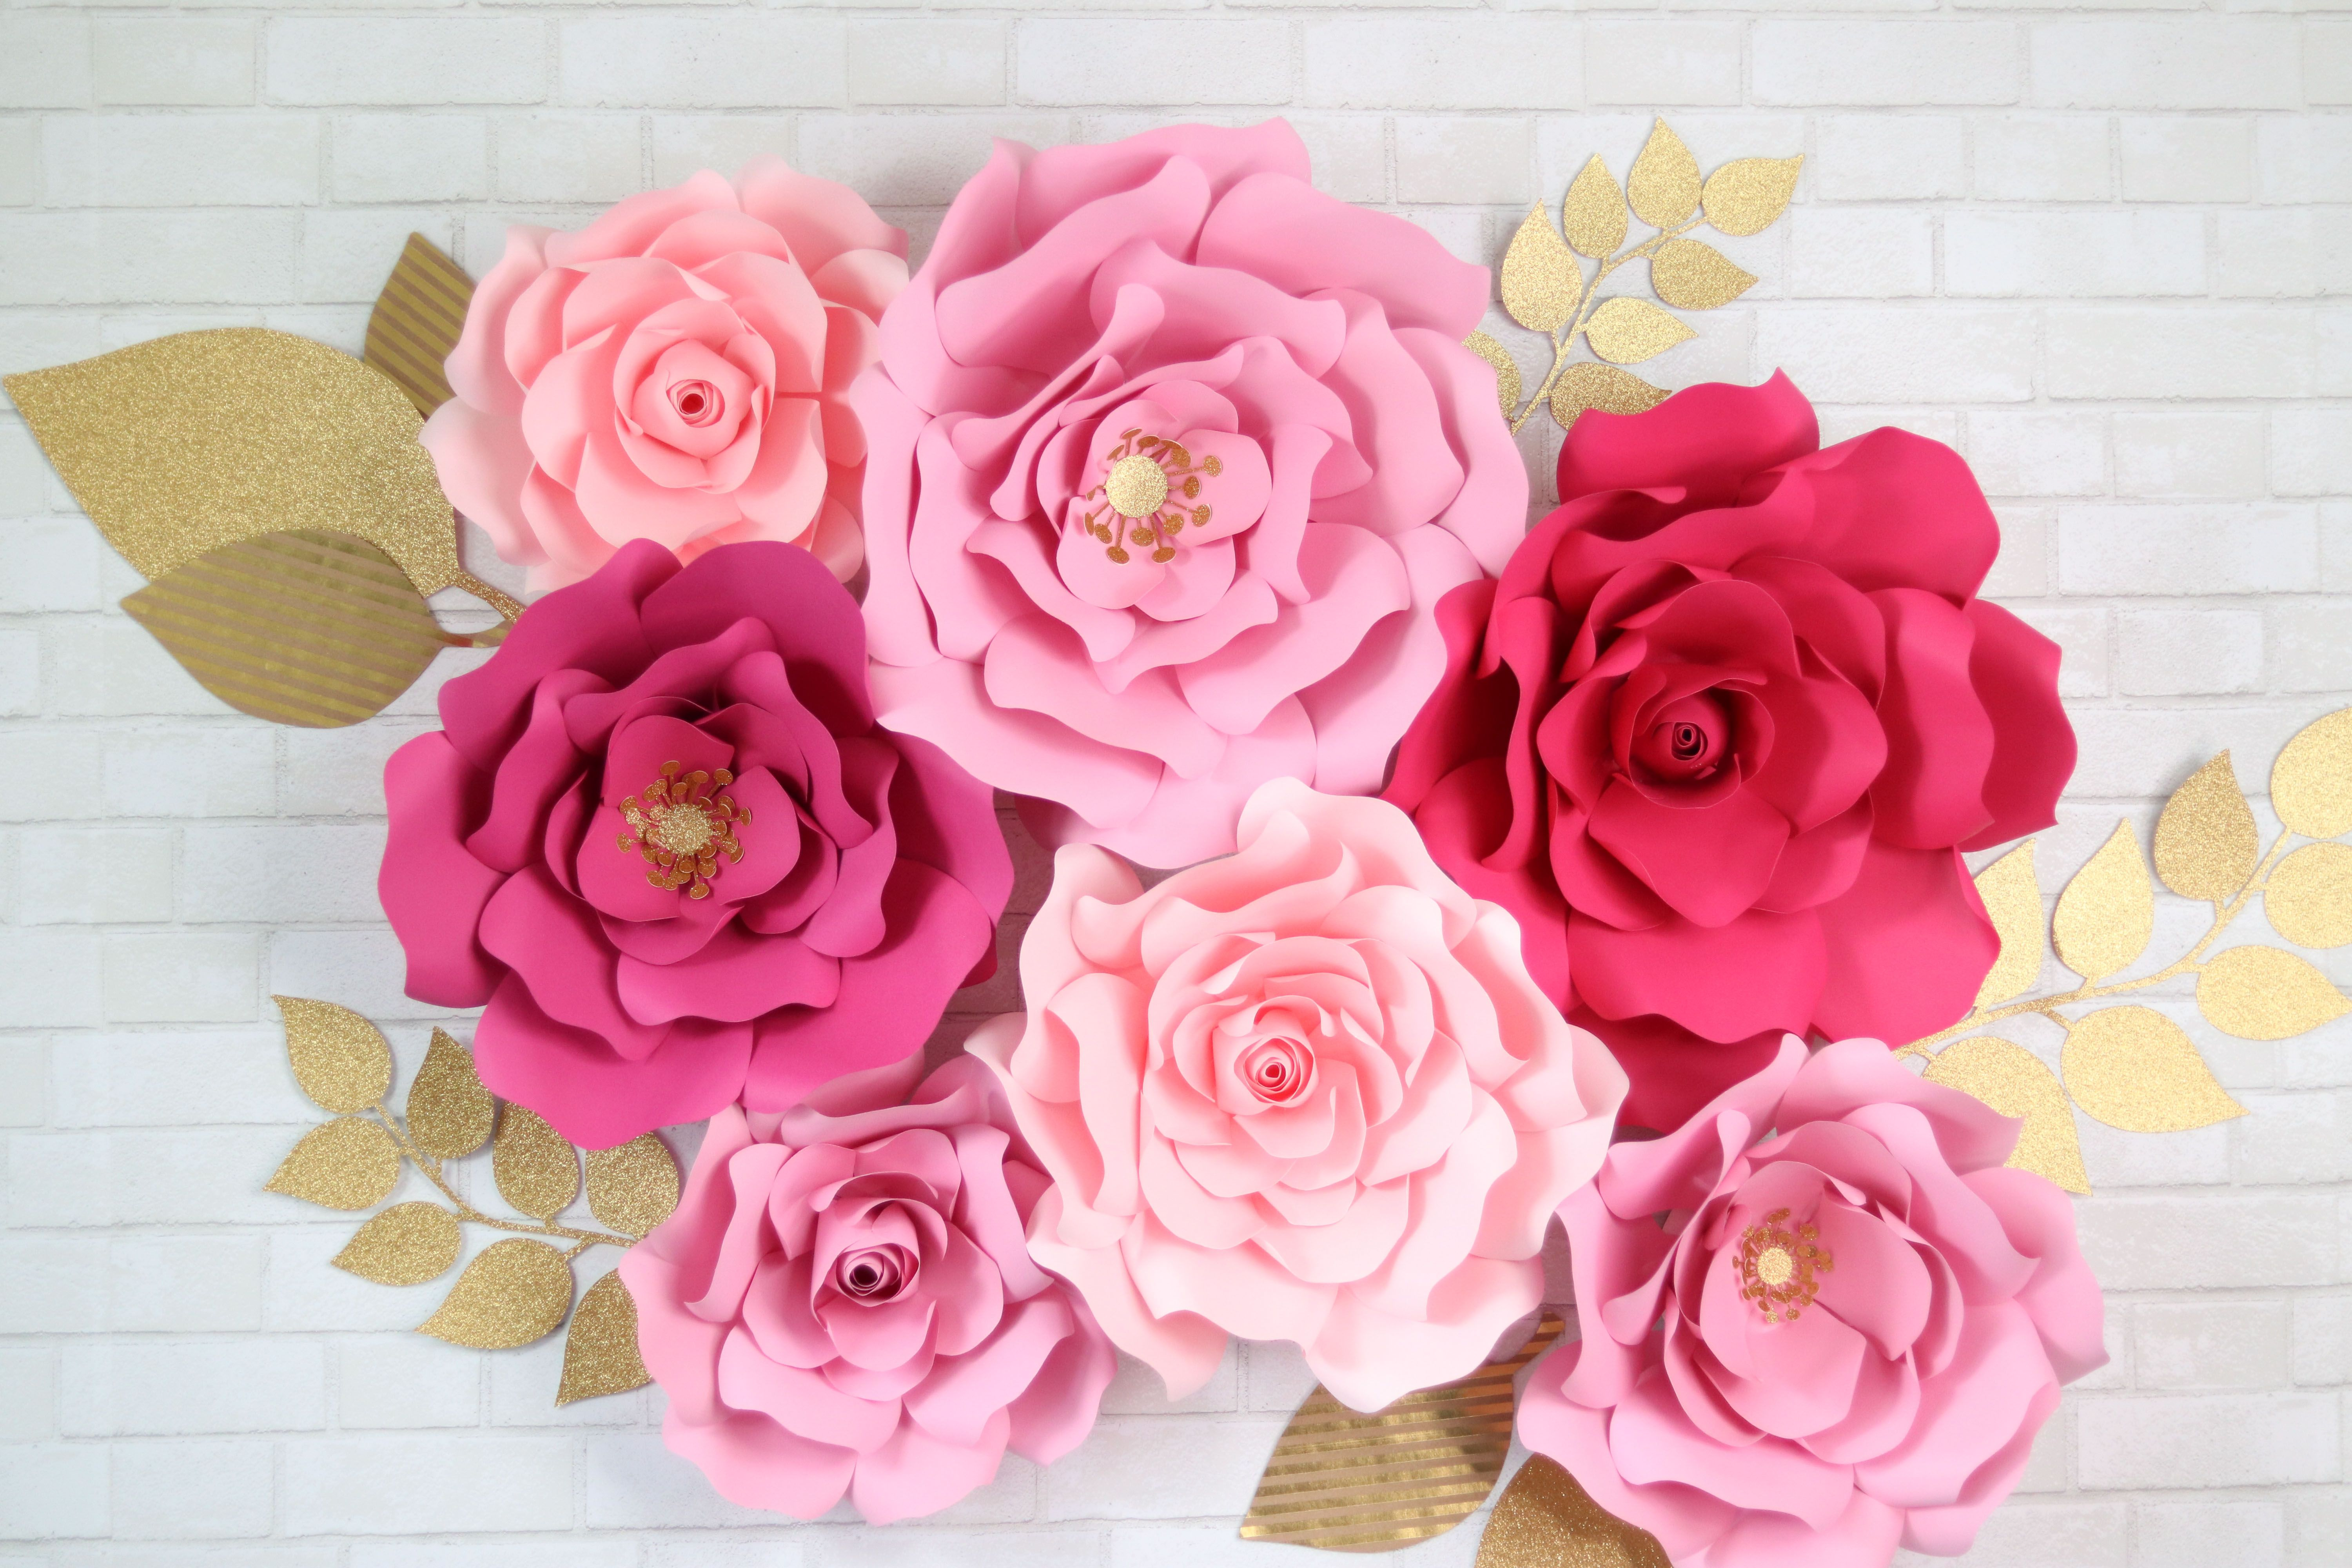 How To Make Large Paper Flowers By Hand Or With A Cricut Paper